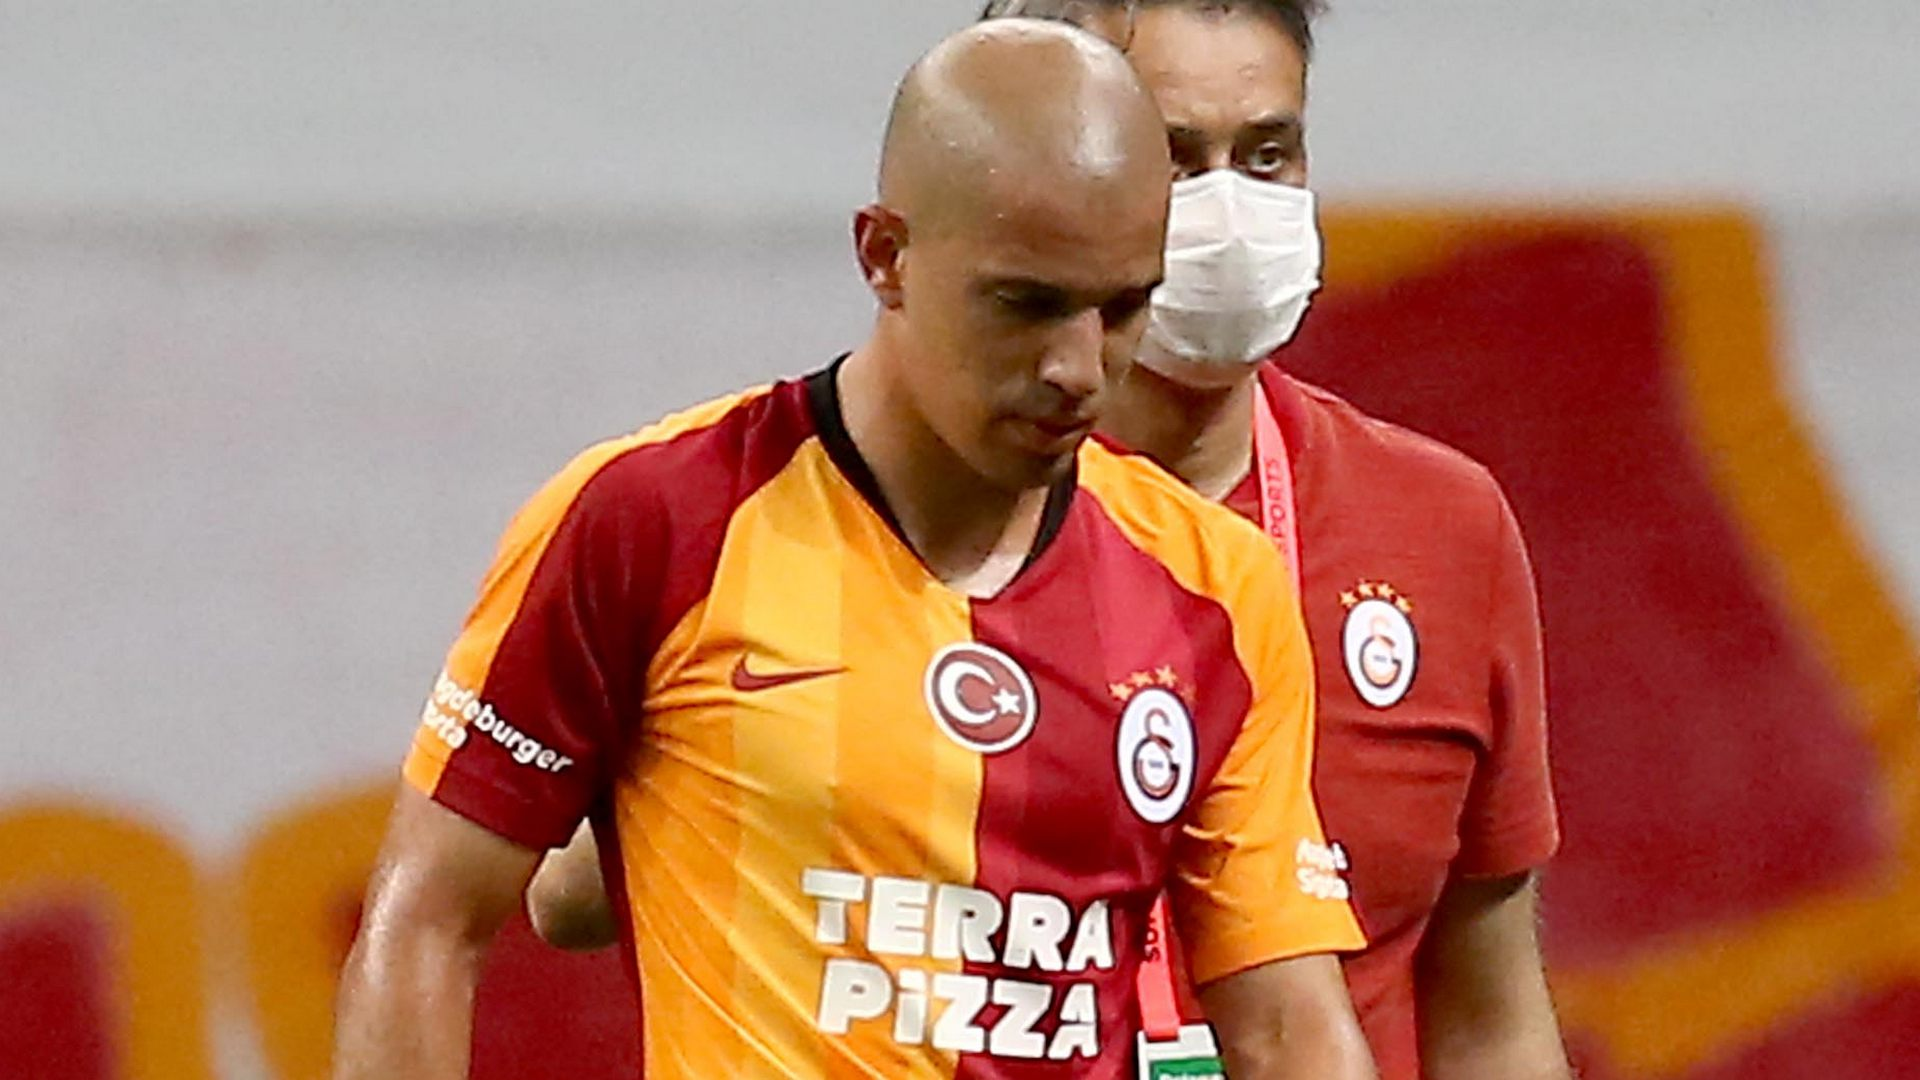 'North African footballers don't have anger problems' – Feghouli hits back after red card in Galatasaray loss